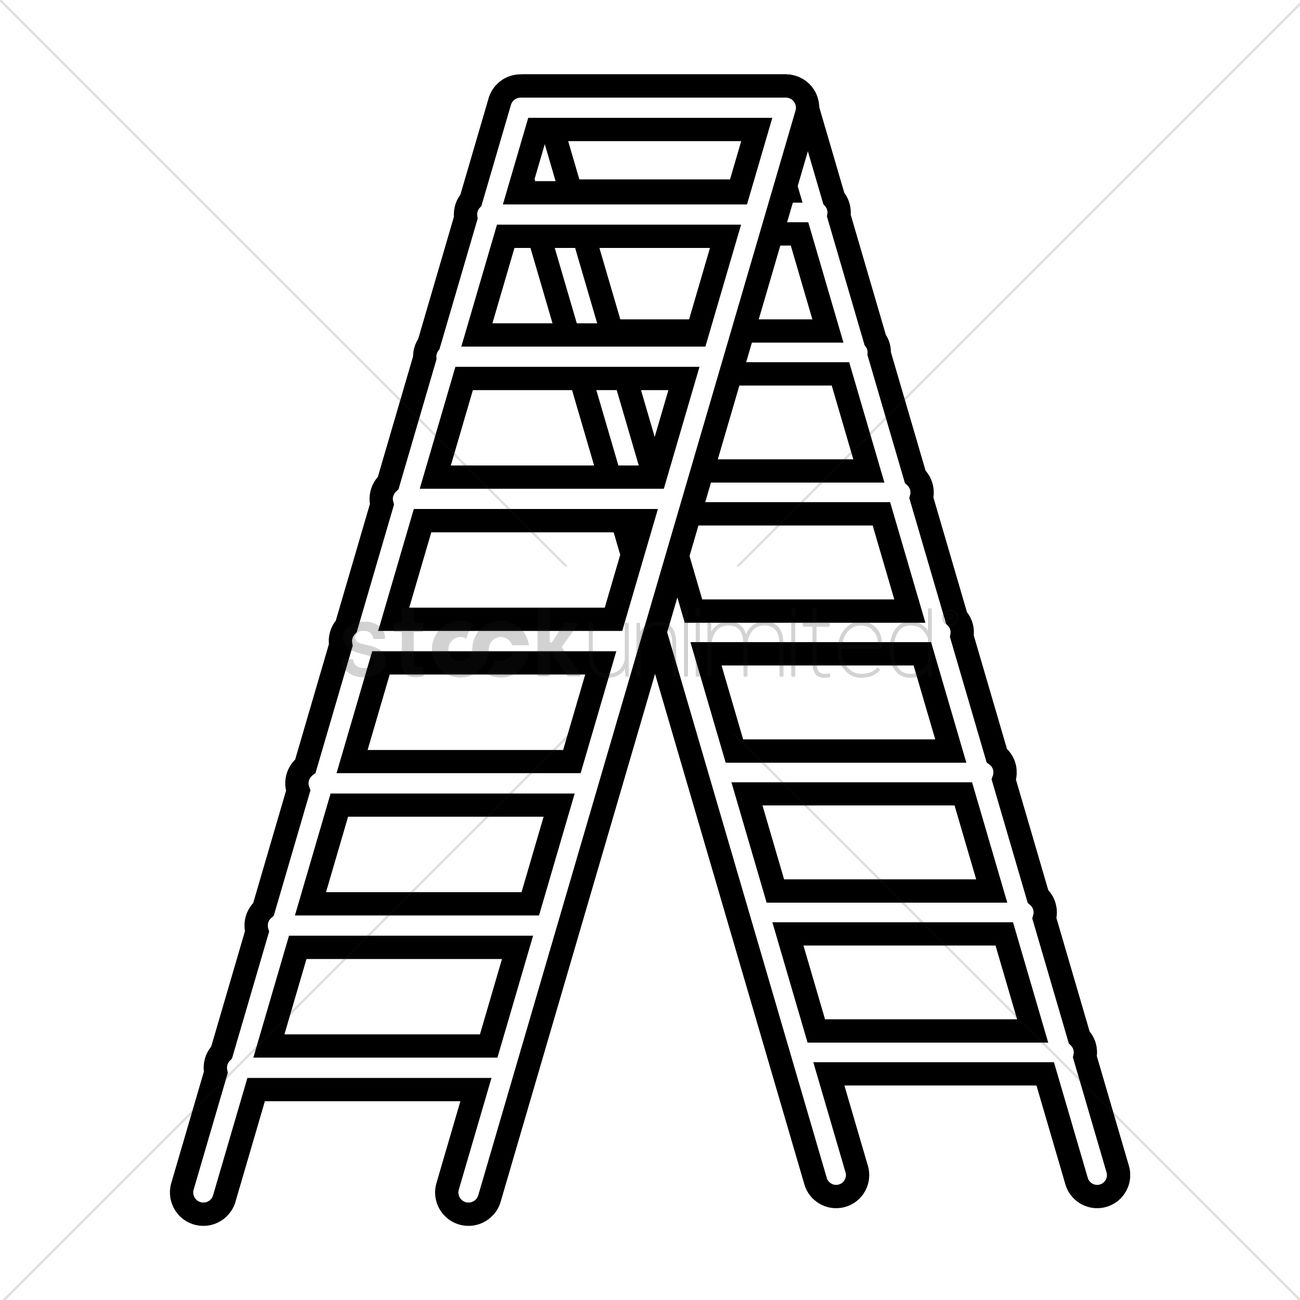 ladder clipart black and white intended for your inspiration.